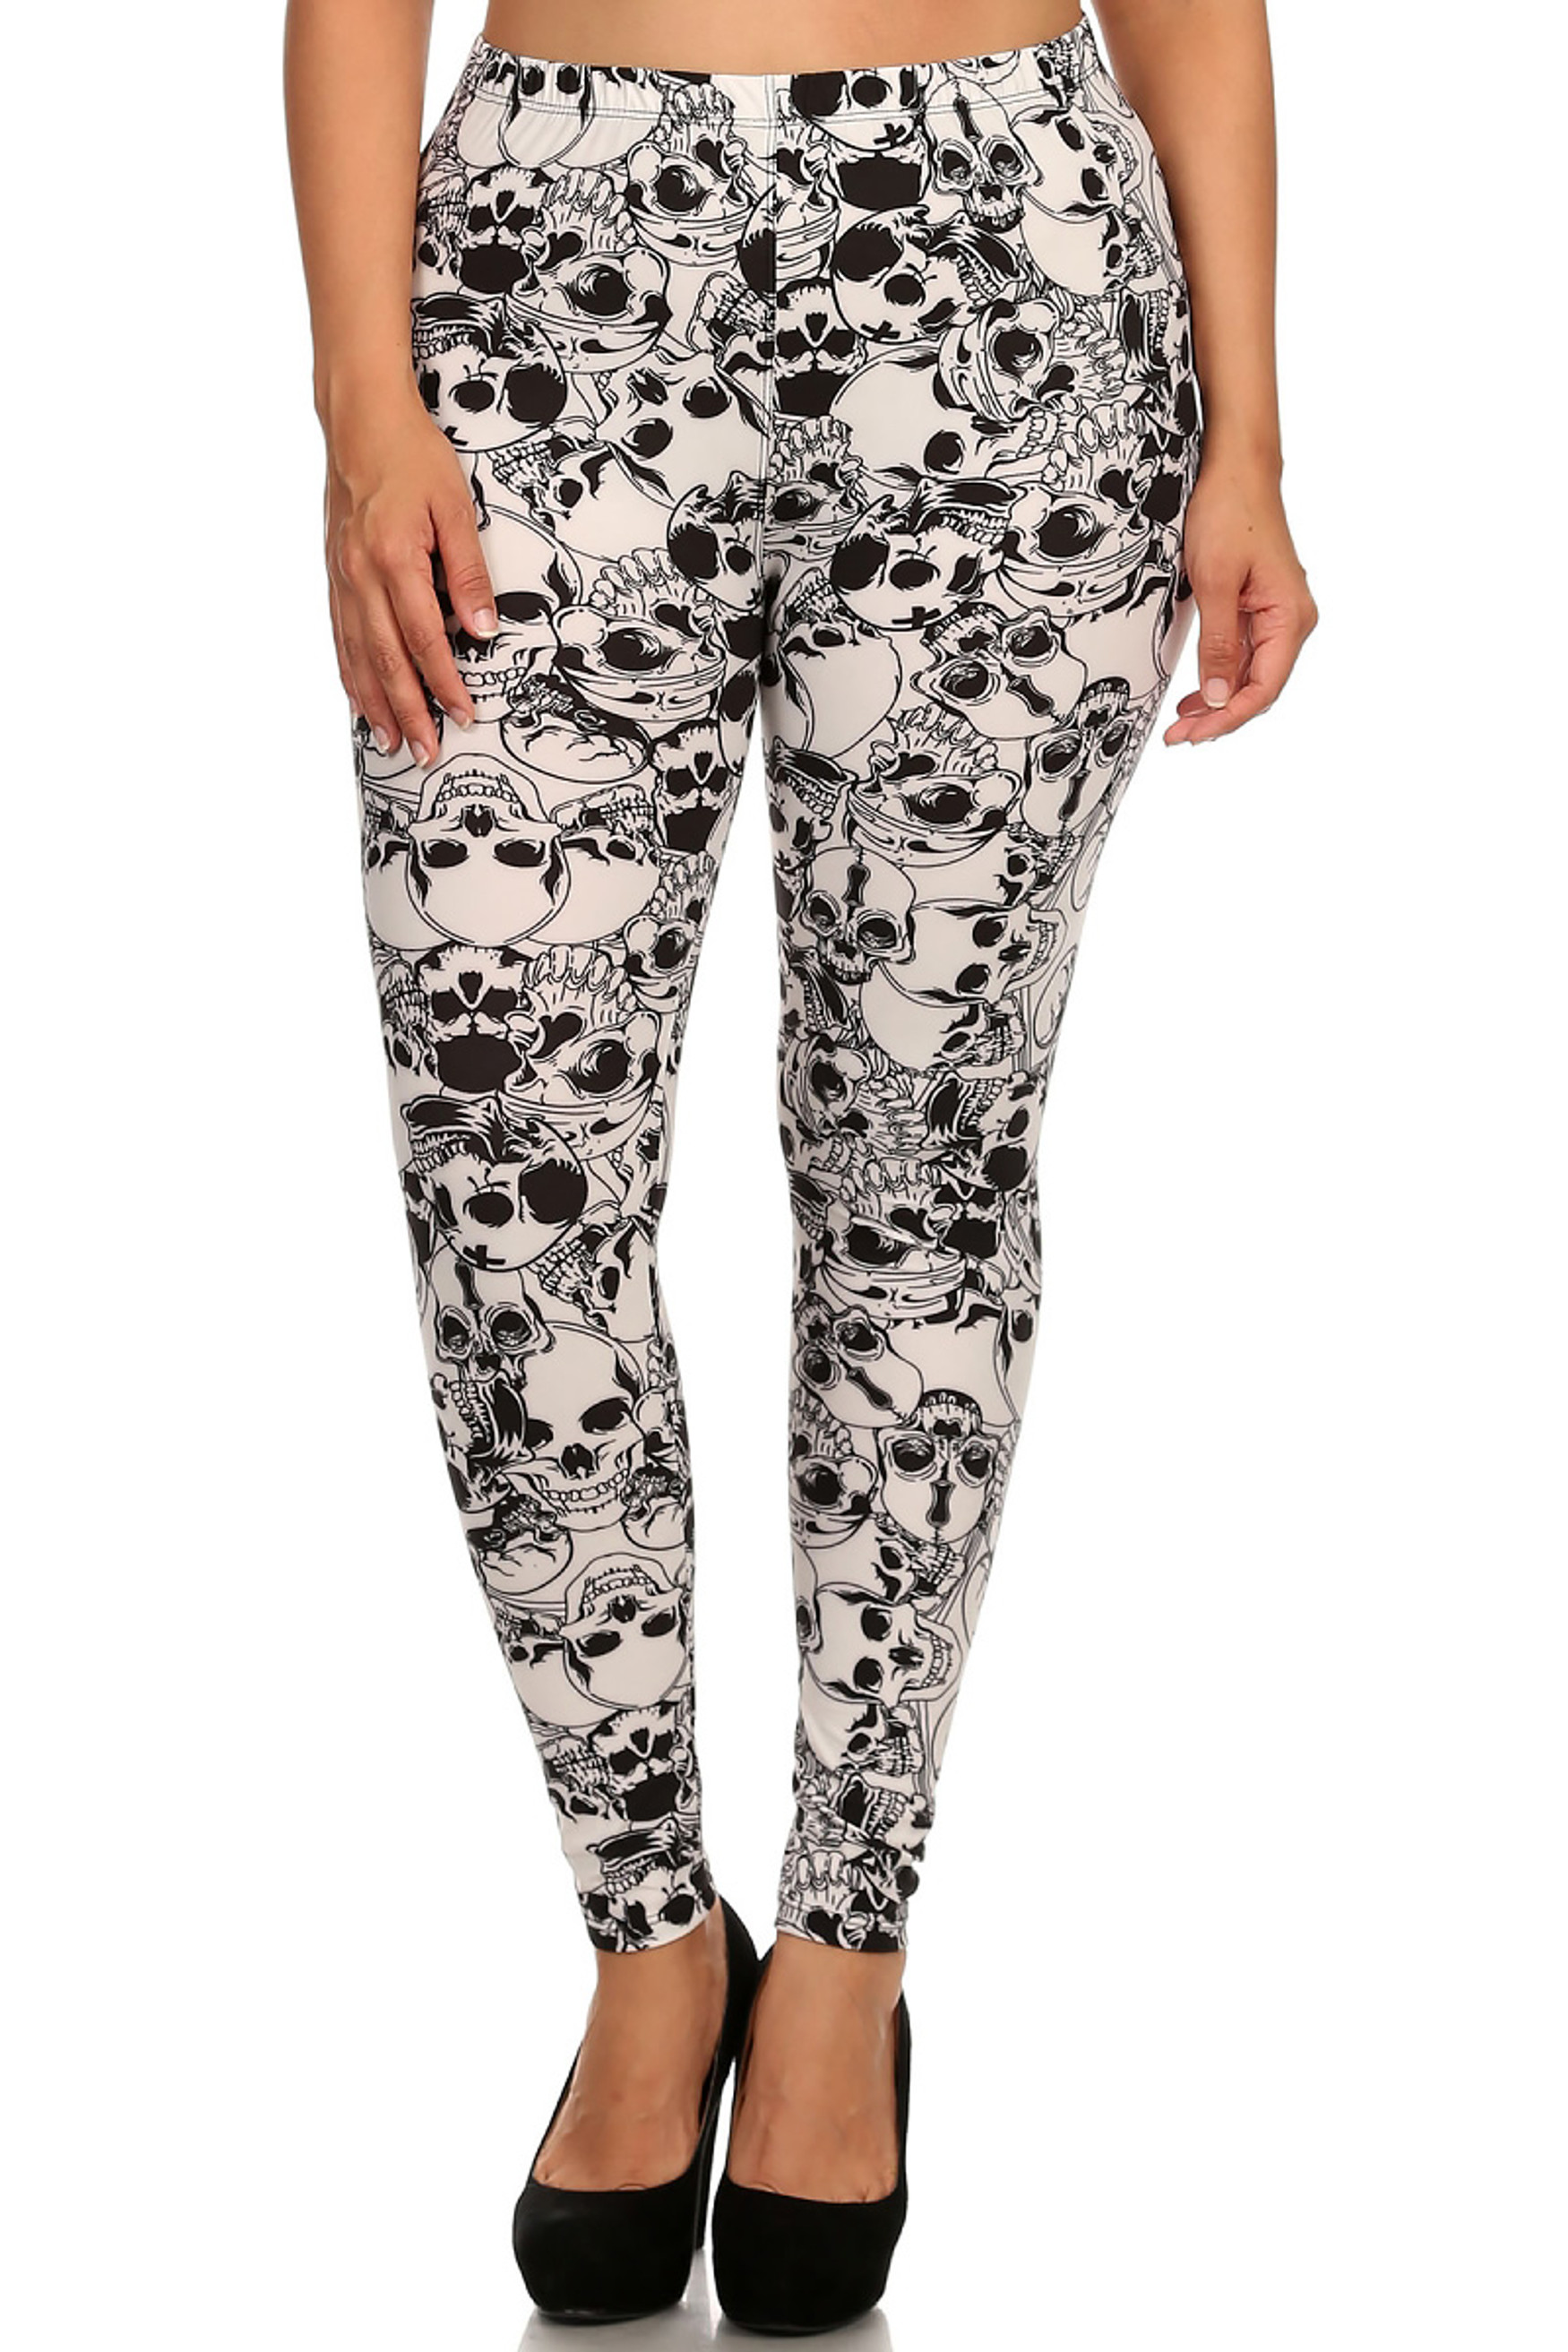 Front image of  Buttery Soft White Layers of Skulls Plus Size Leggings - 3X-5X